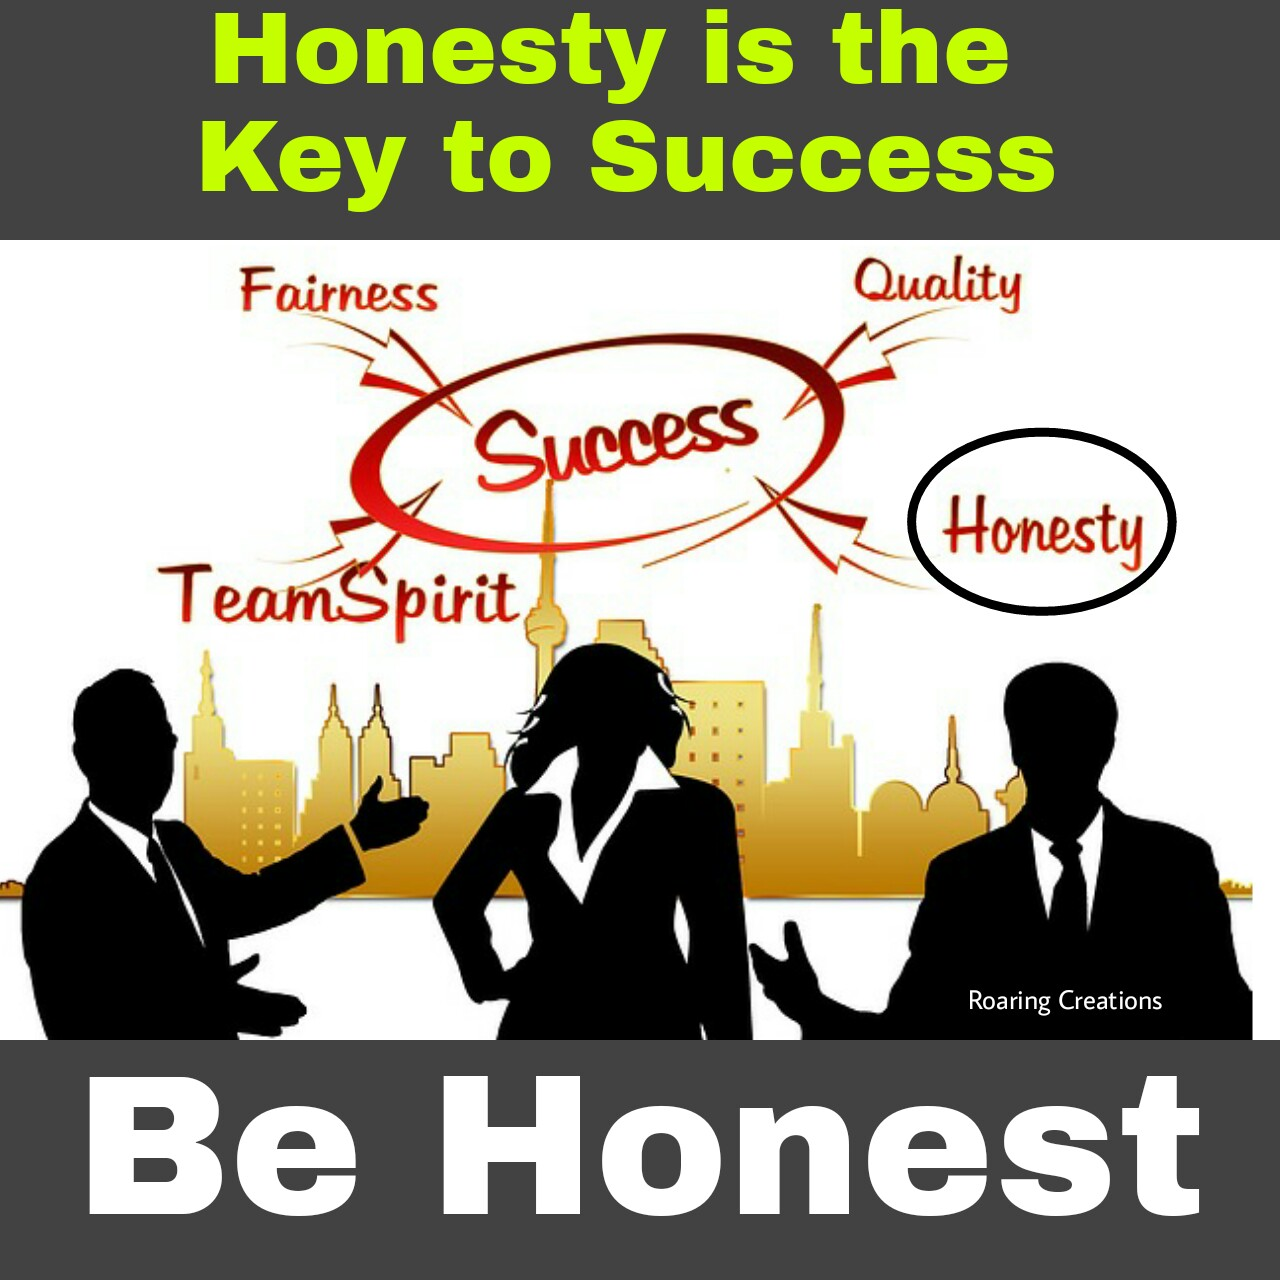 Honesty is the key to success